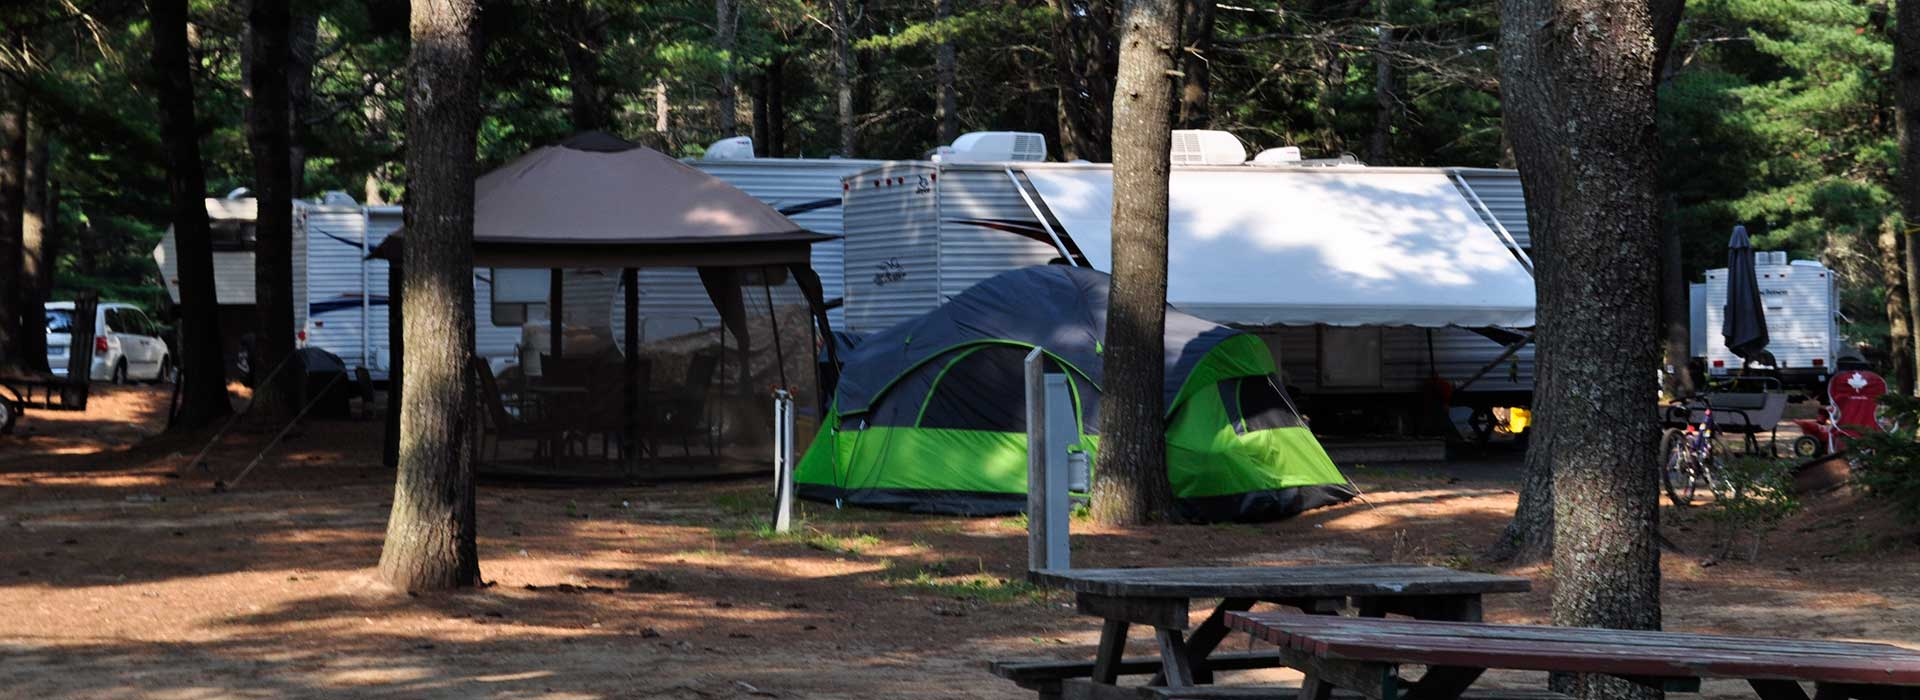 campground-header-blueberry-hill